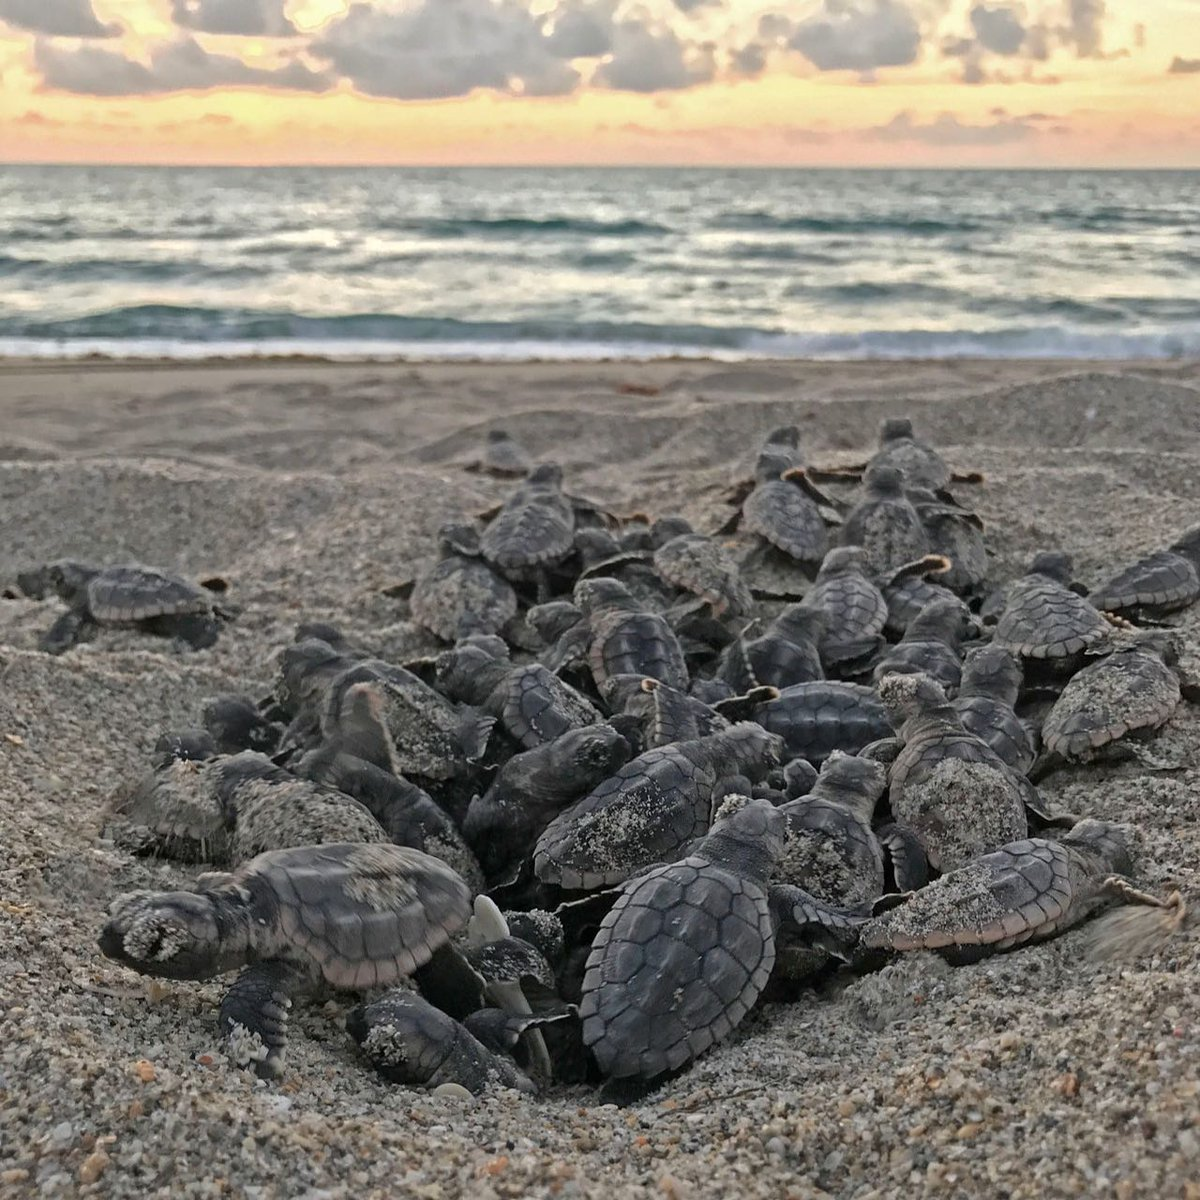 Sea turtle nesting season begins today! Nesting season runs March 1 - October 31 in Palm Beach County. It is critical to protect our beaches every day, not just during nesting season. How you can help:  📷: Loggerhead Marinelife Center #beaches #seaturtles